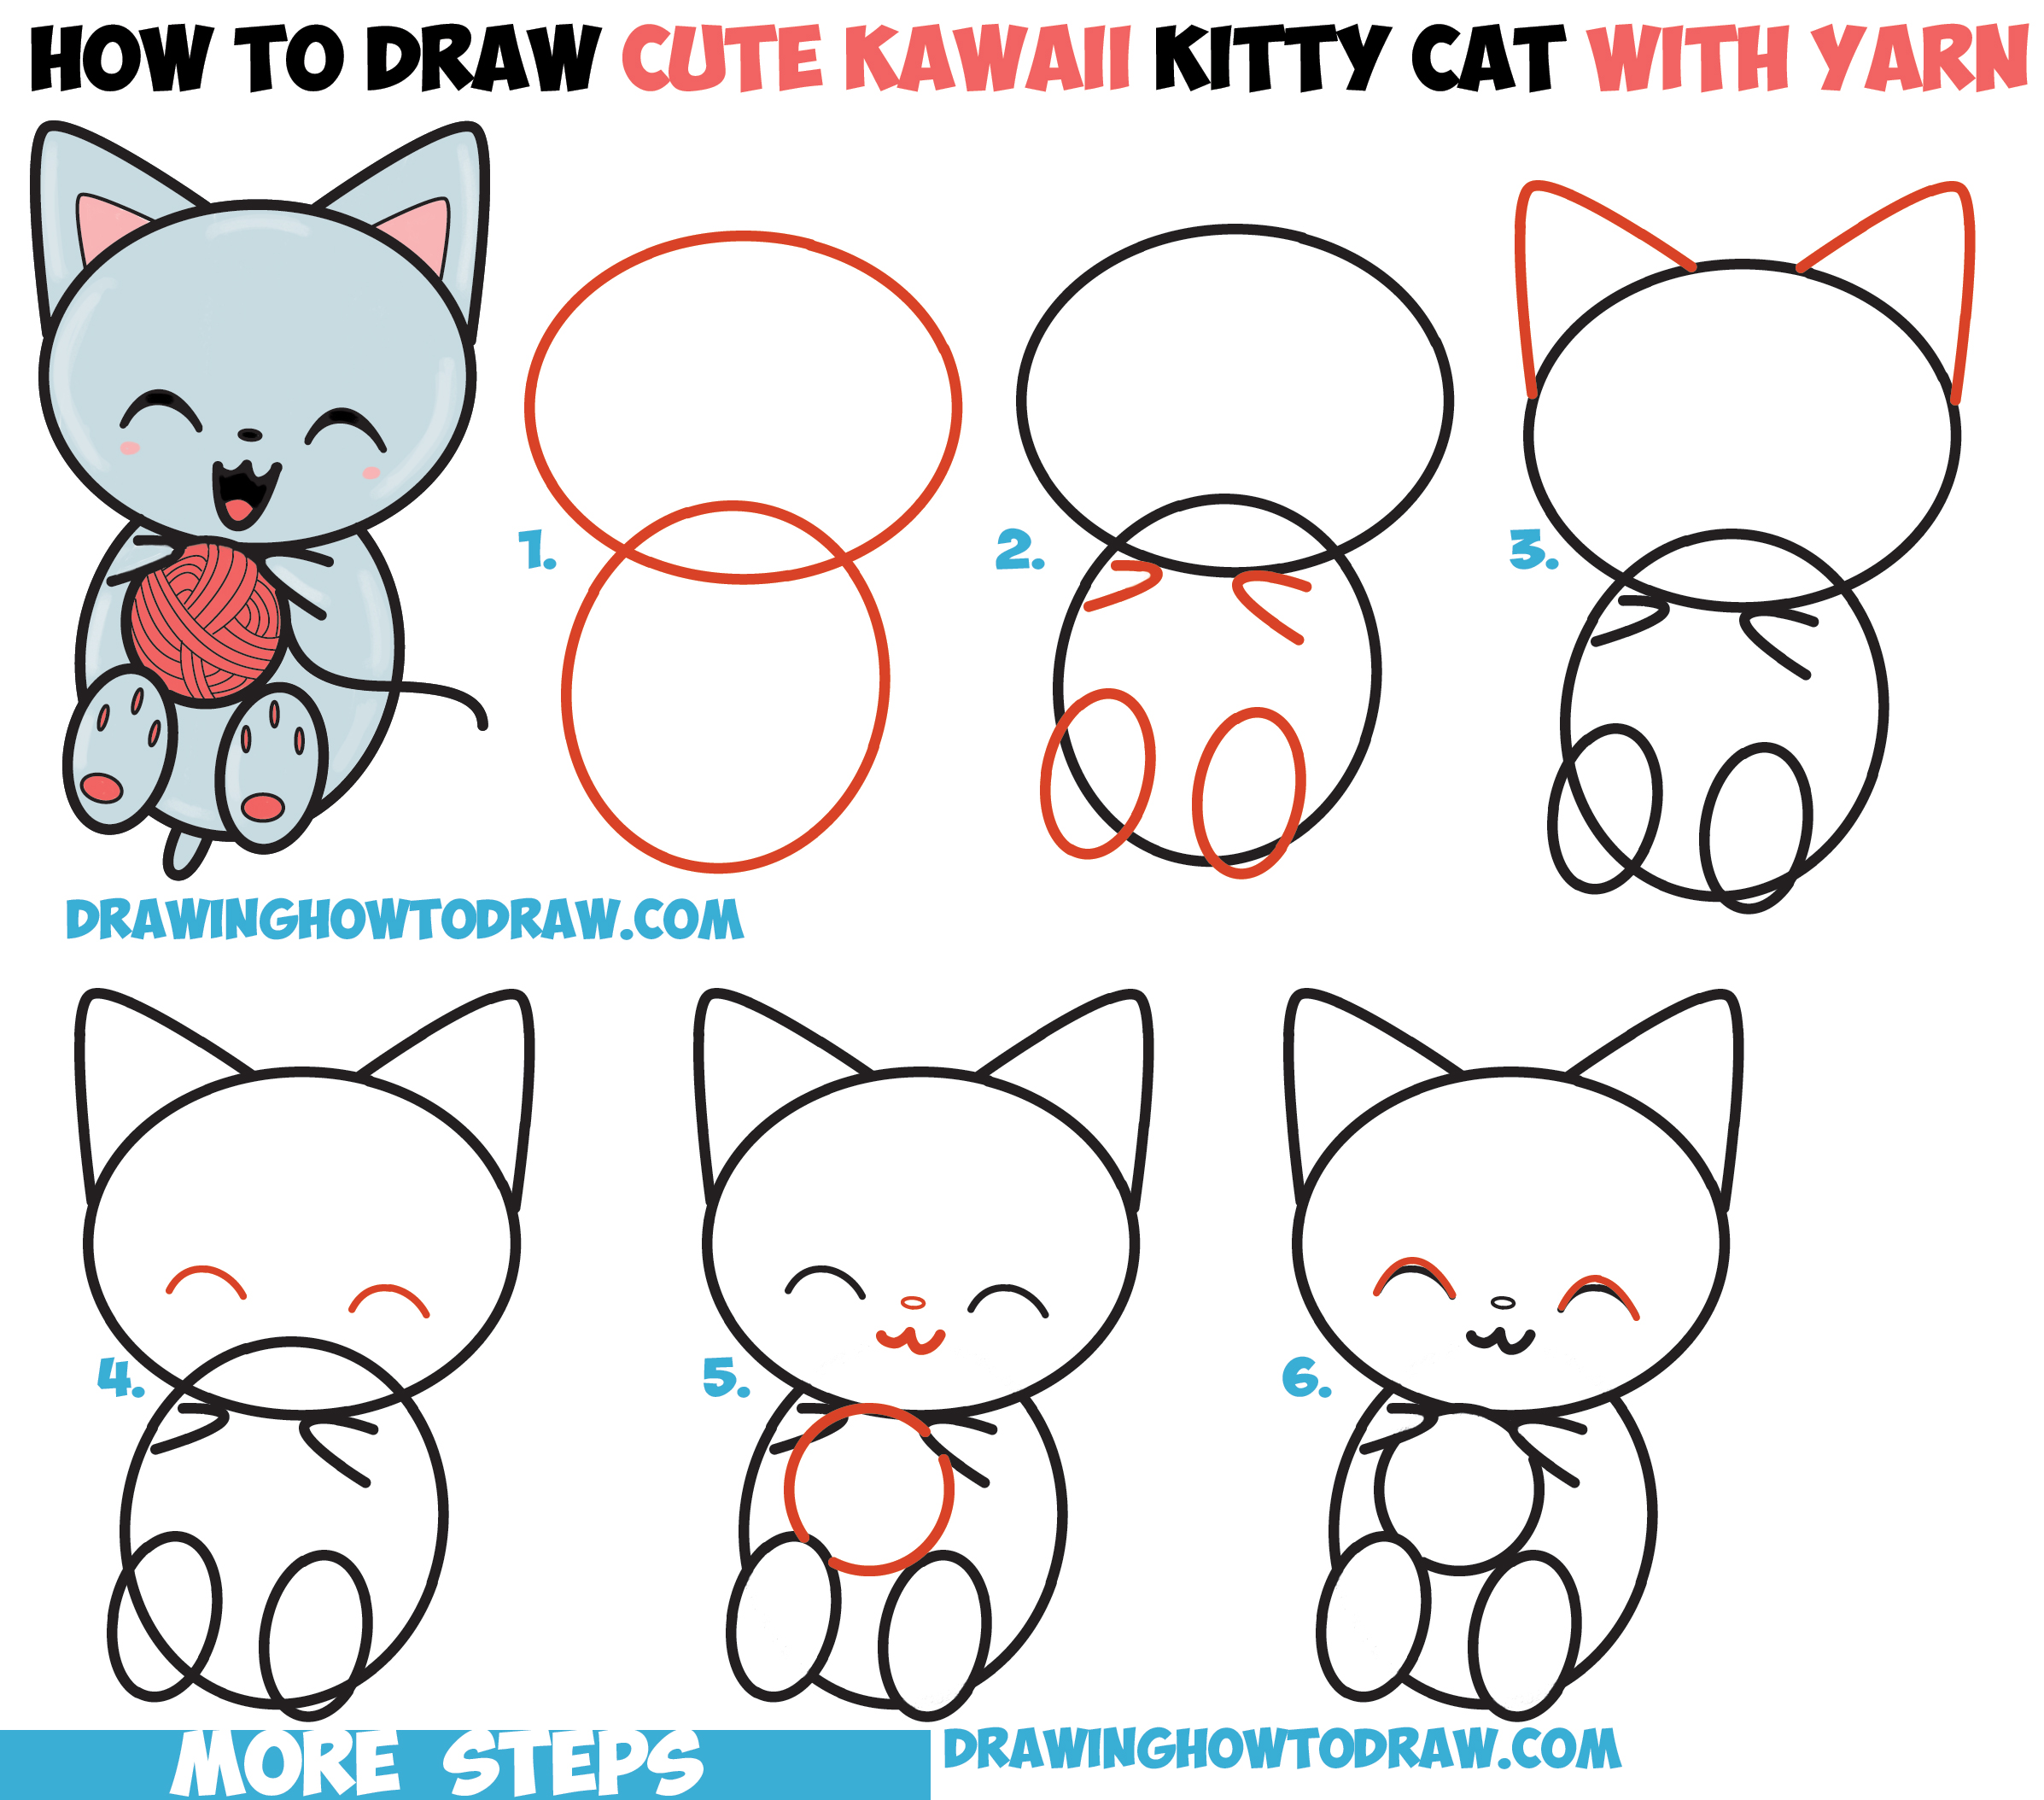 How to draw cute kawaii kitten cat playing with yarn for Learn to draw cartoons step by step lessons